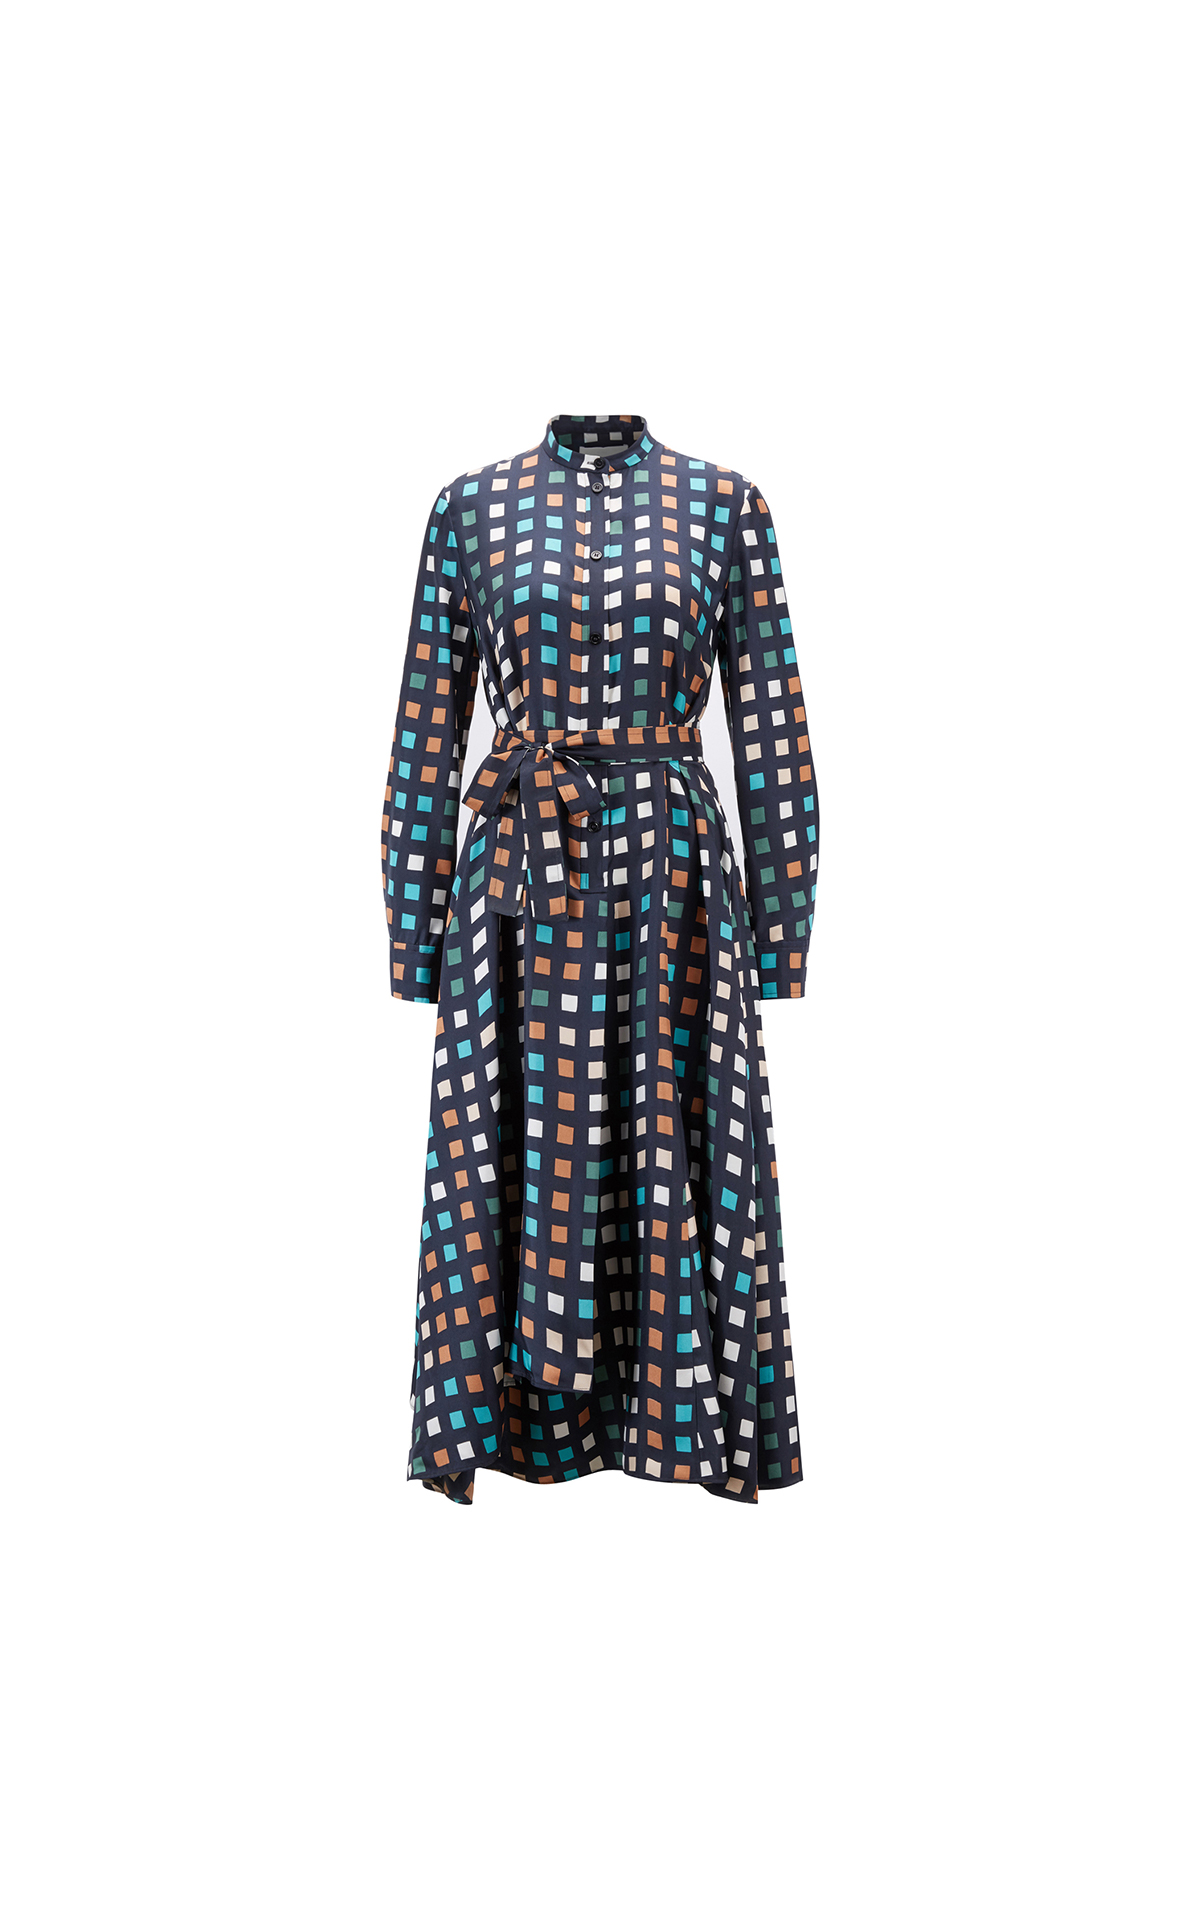 BOSS Women's cube-print shirt dress at The Bicester Village Shopping Collection